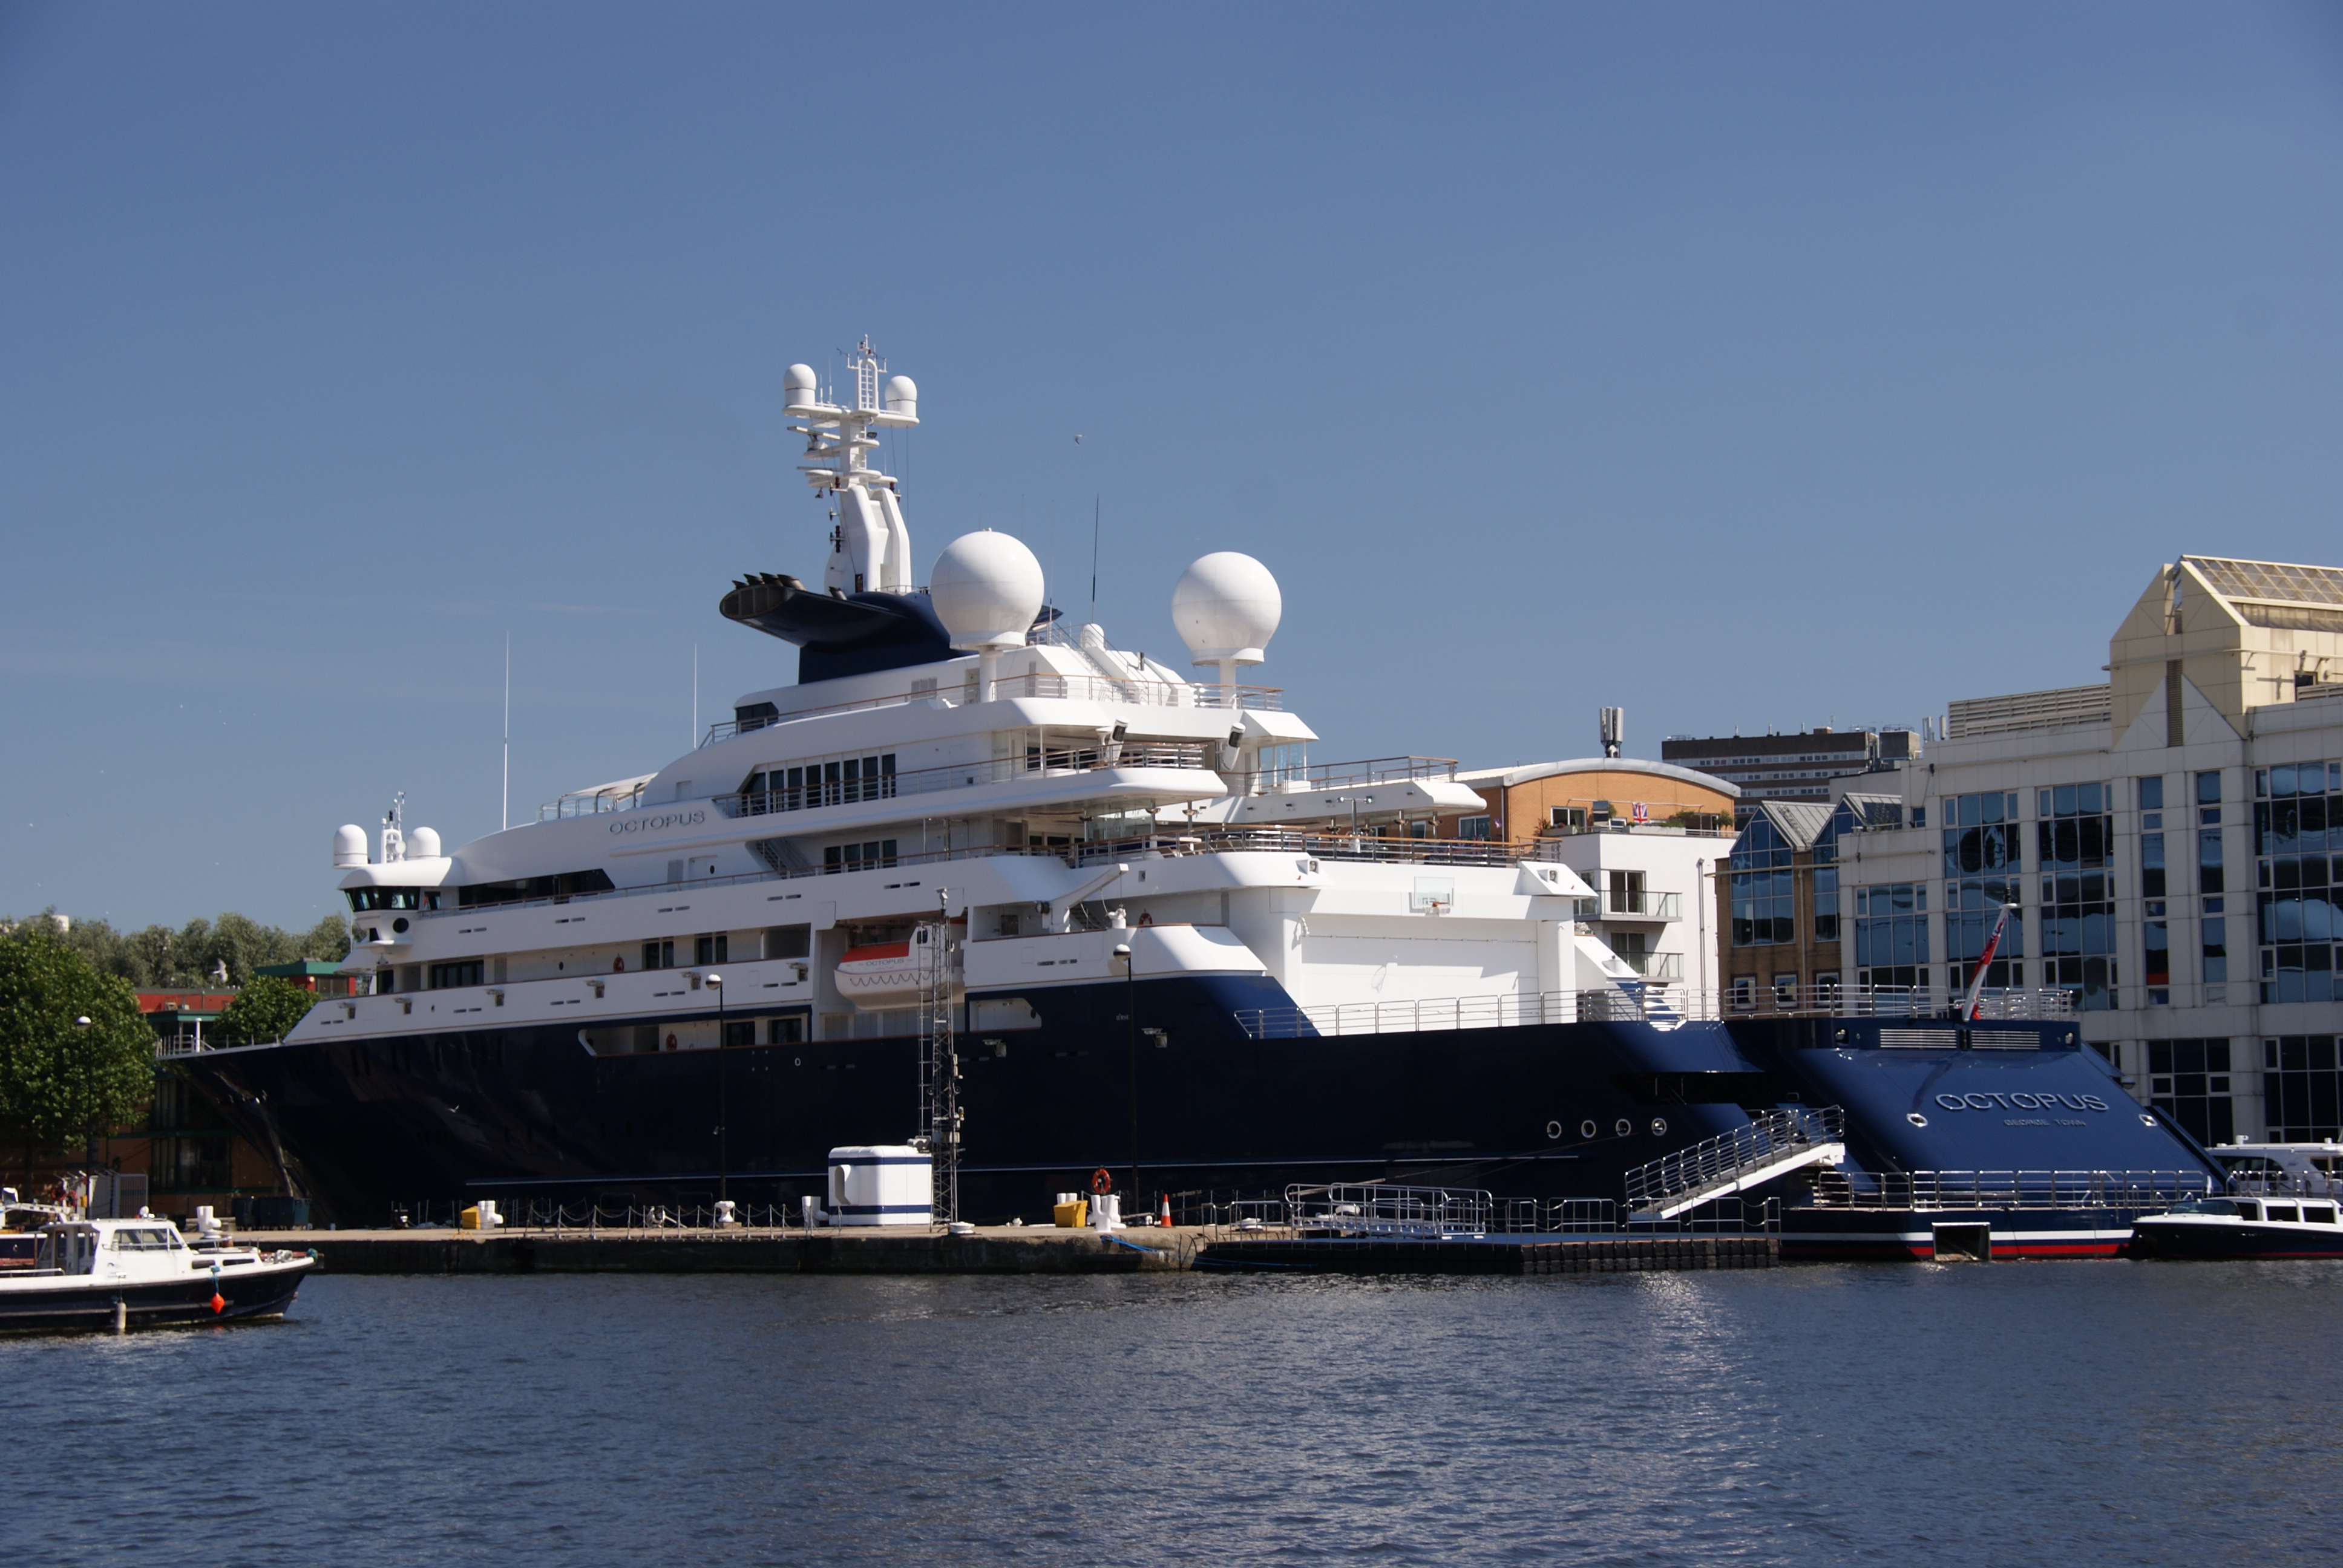 remote controled with File Yacht Octopus Moored At Canary Wharf  London   22 July 2012 on Realistic Robot Leopard Called Lily 10011001 moreover I further Vik in addition Product Show together with Excel Boxing Arena.